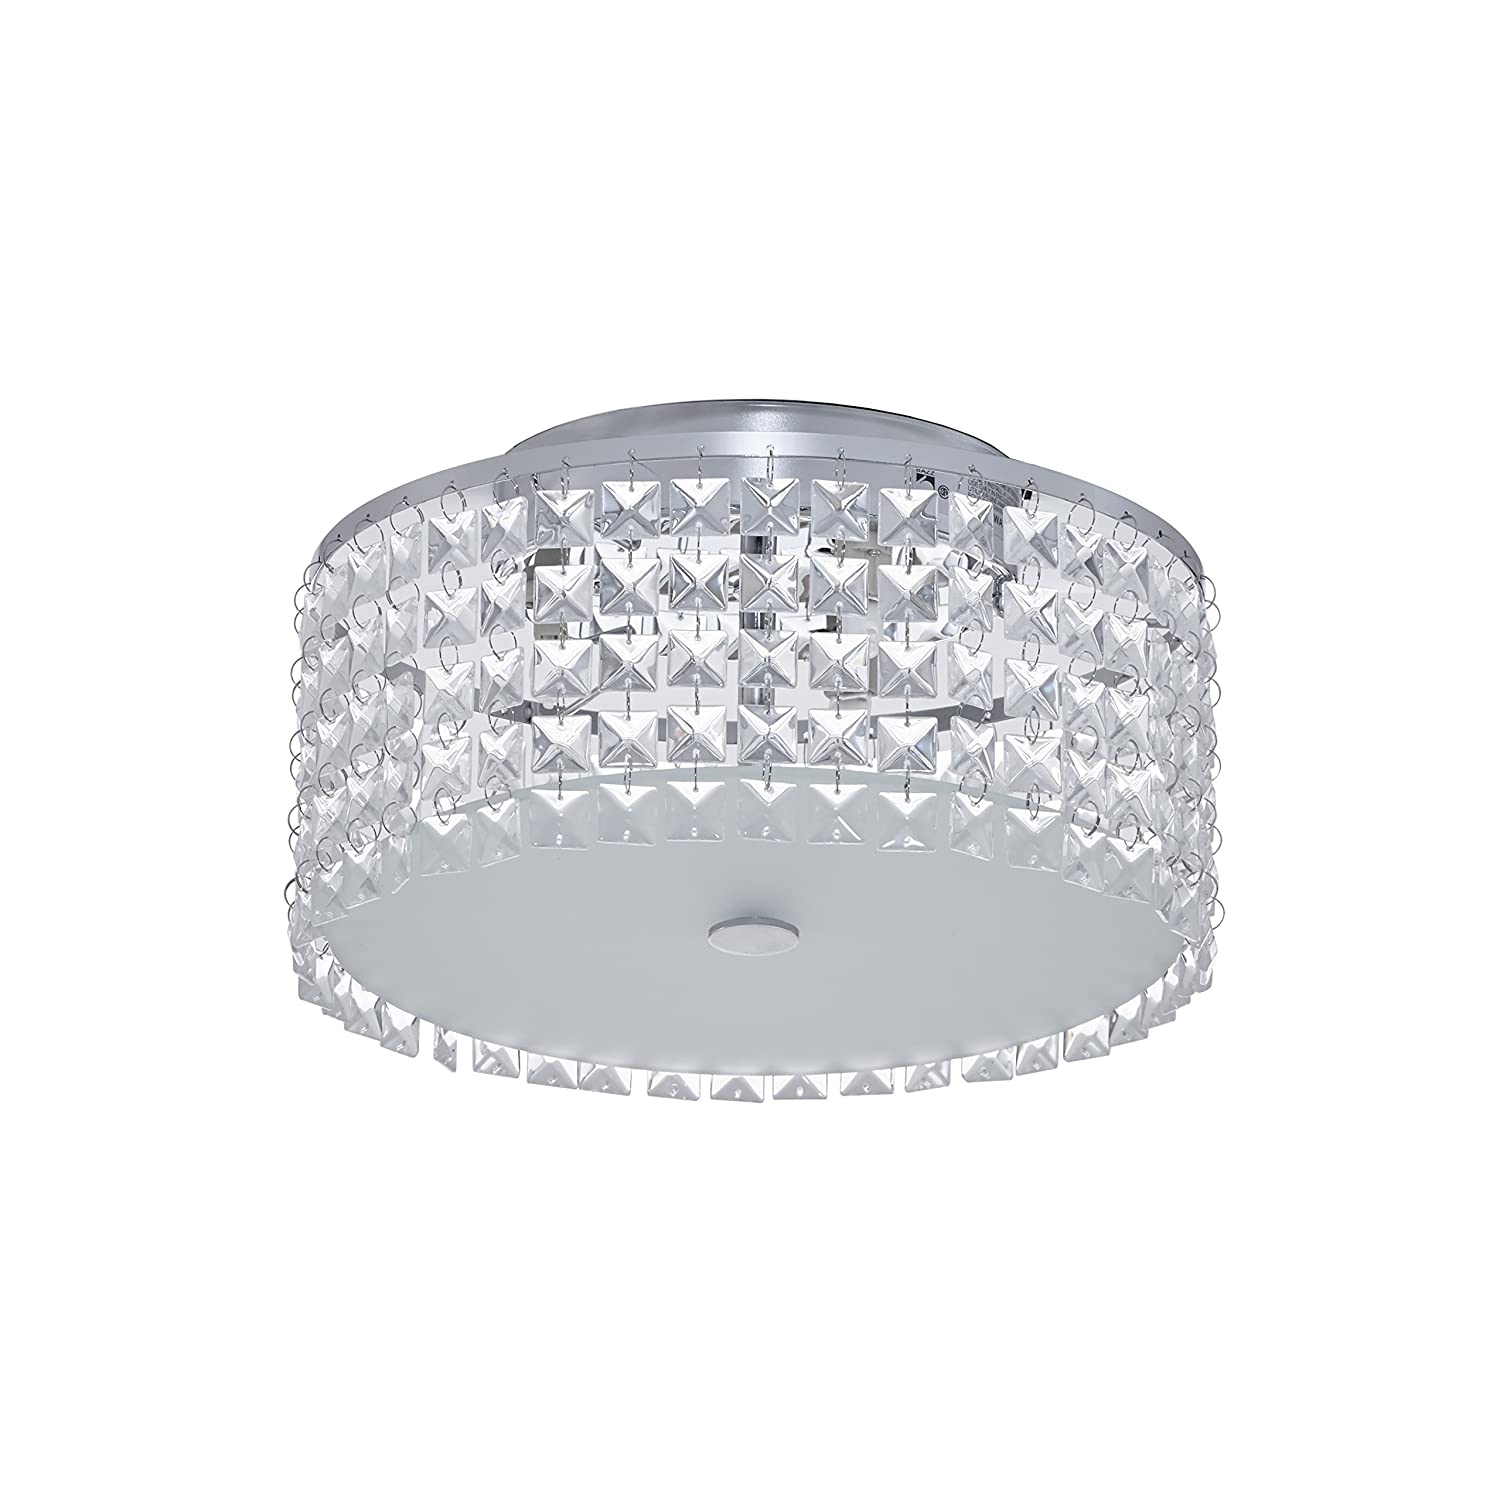 Bazz glam decorative ceiling fixture dimmable easy installation 11 frosted glass